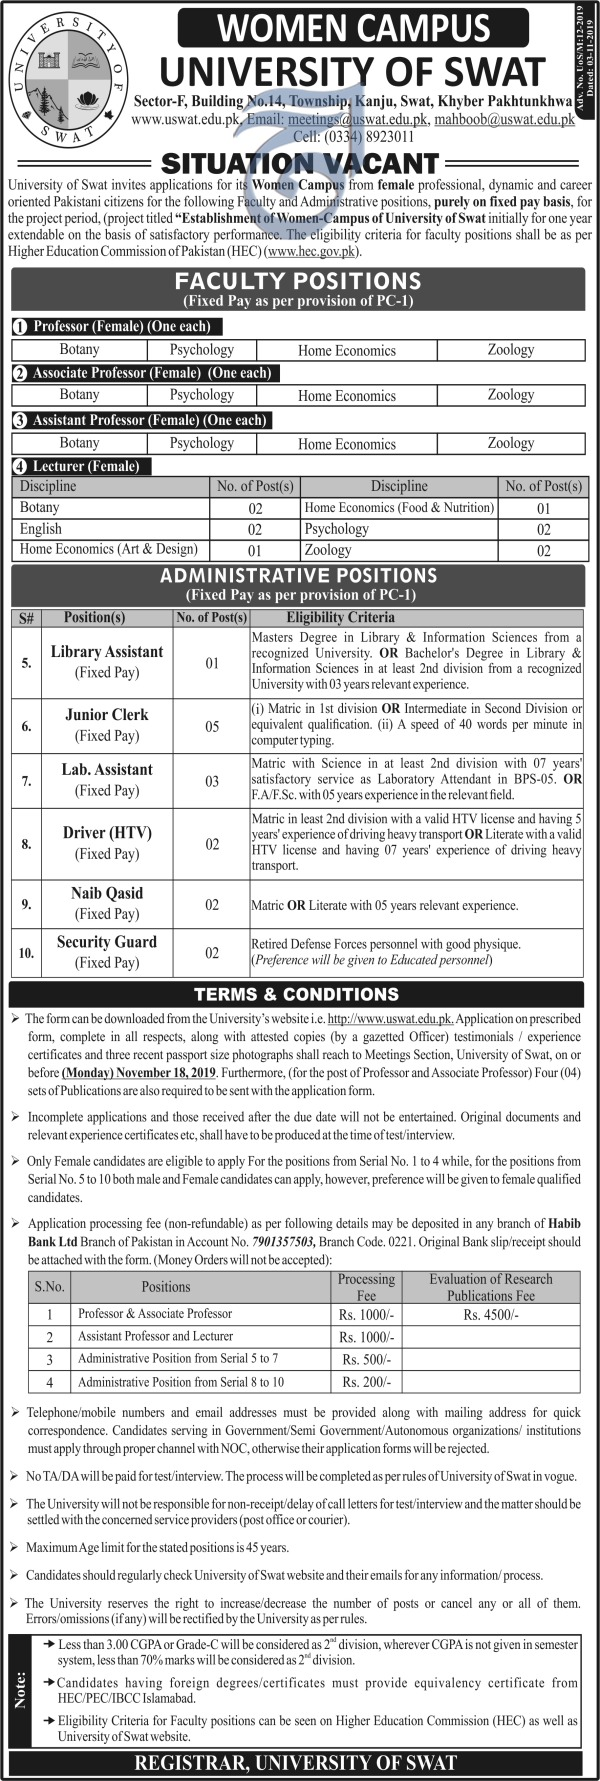 University of Swat USWAT Jobs Women Campus November 2019